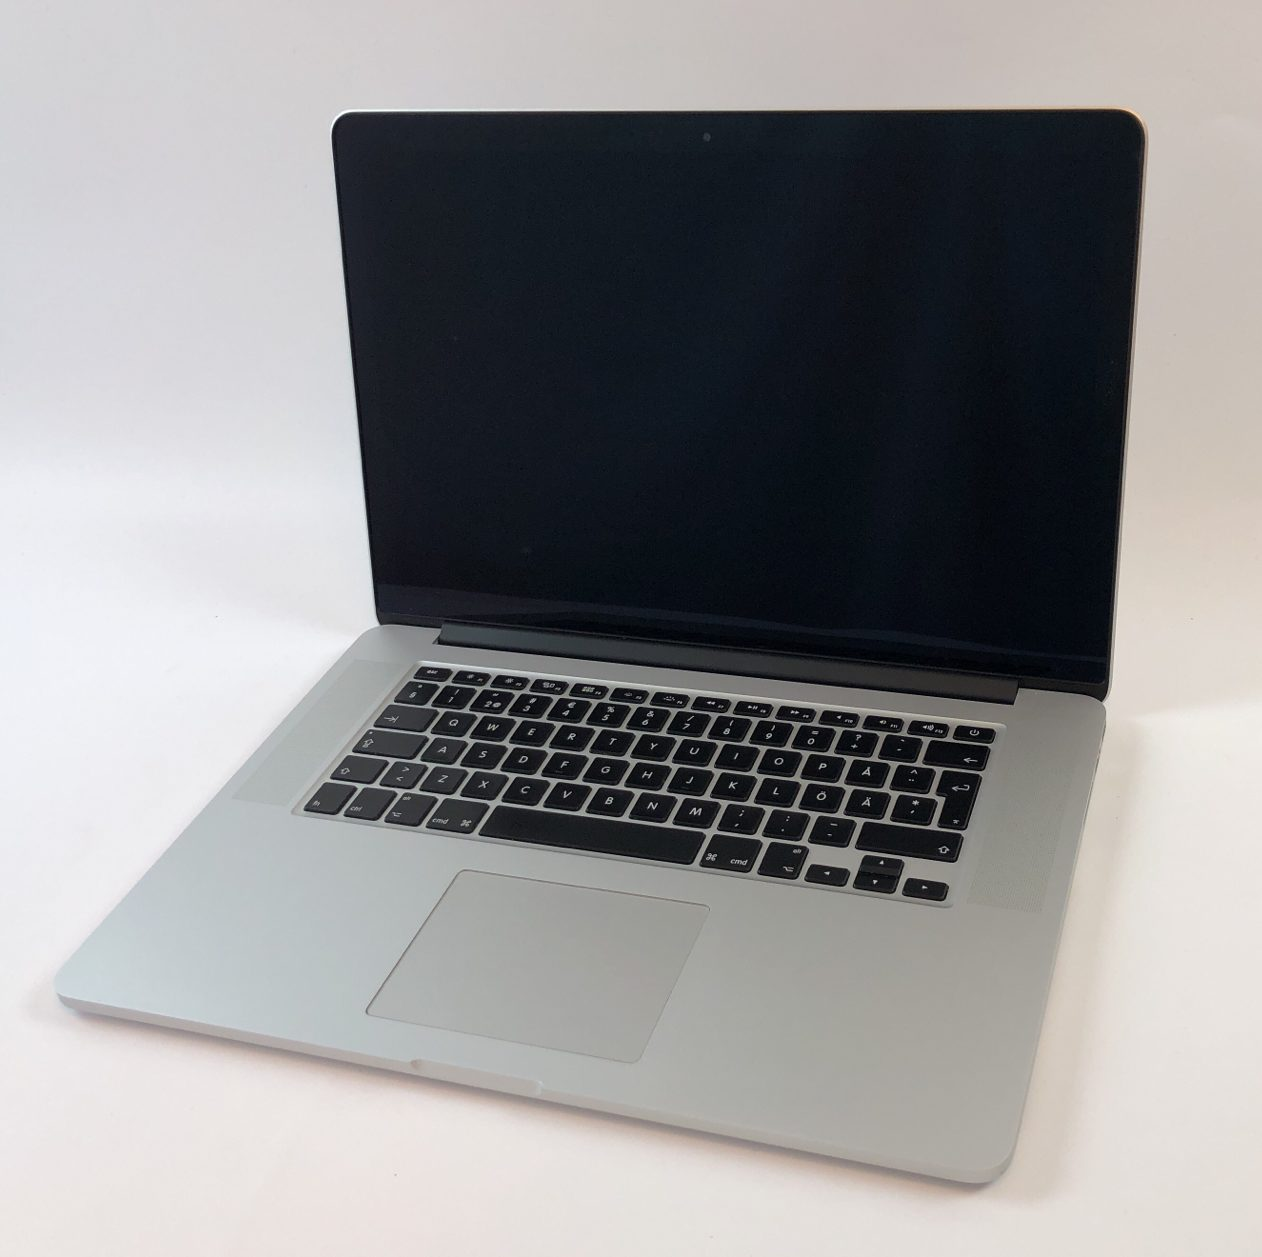 "MacBook Pro Retina 15"" Mid 2015 (Intel Quad-Core i7 2.5 GHz 16 GB RAM 512 GB SSD), Intel Quad-Core i7 2.5 GHz, 16 GB RAM, 512 GB SSD, Kuva 1"